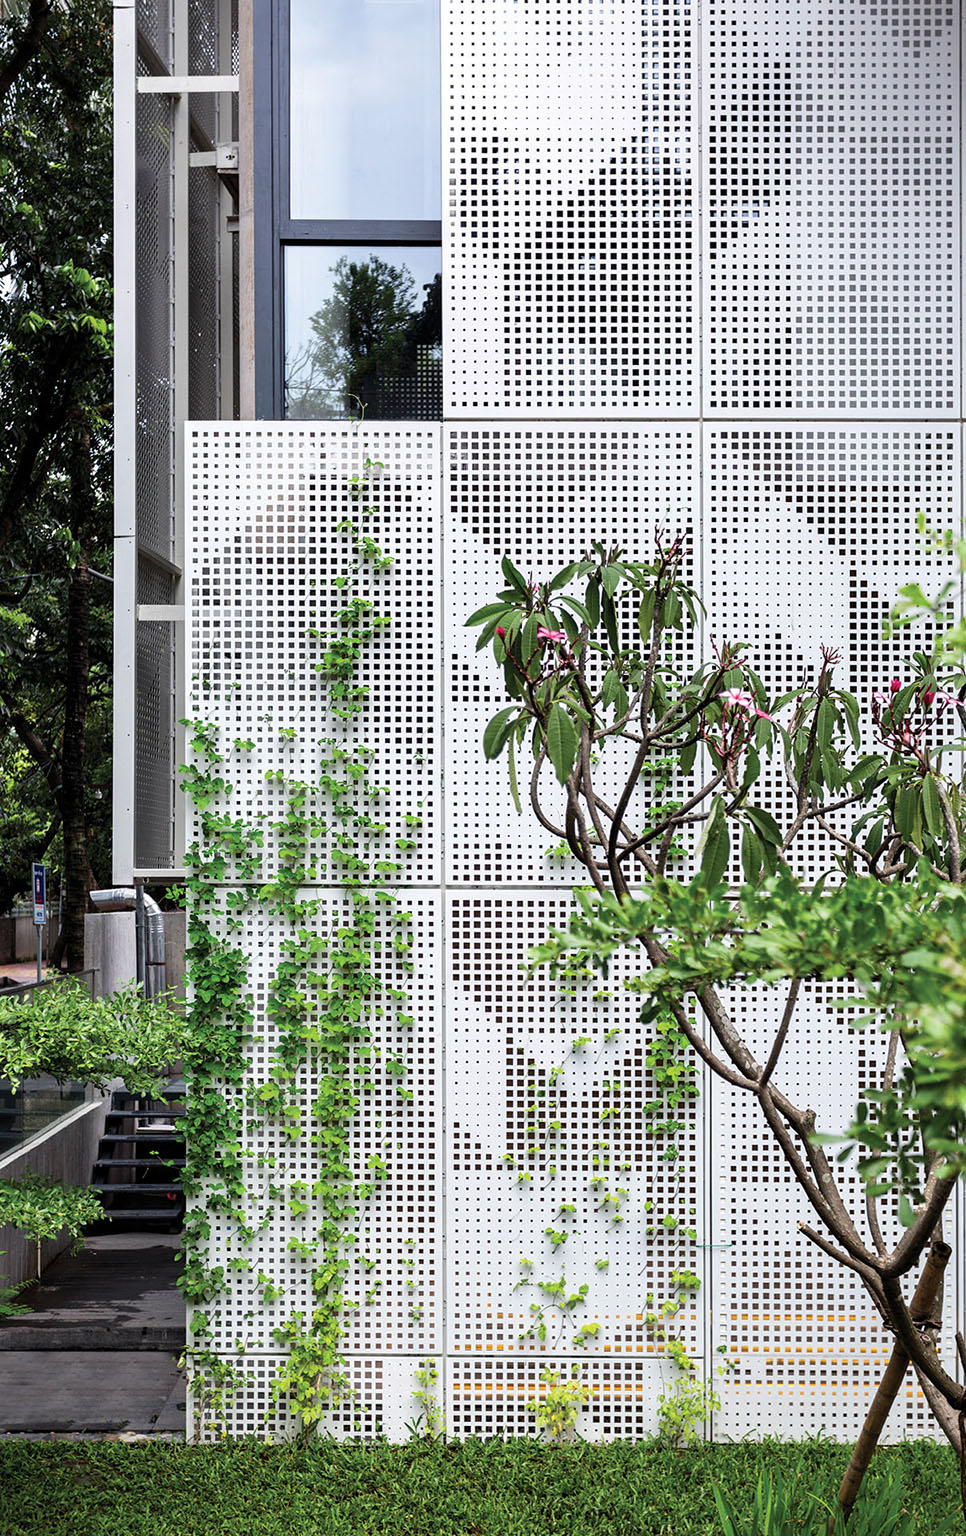 Ground floor outdoor with plants growing on the screens © Studio Morphogenesis Ltd.